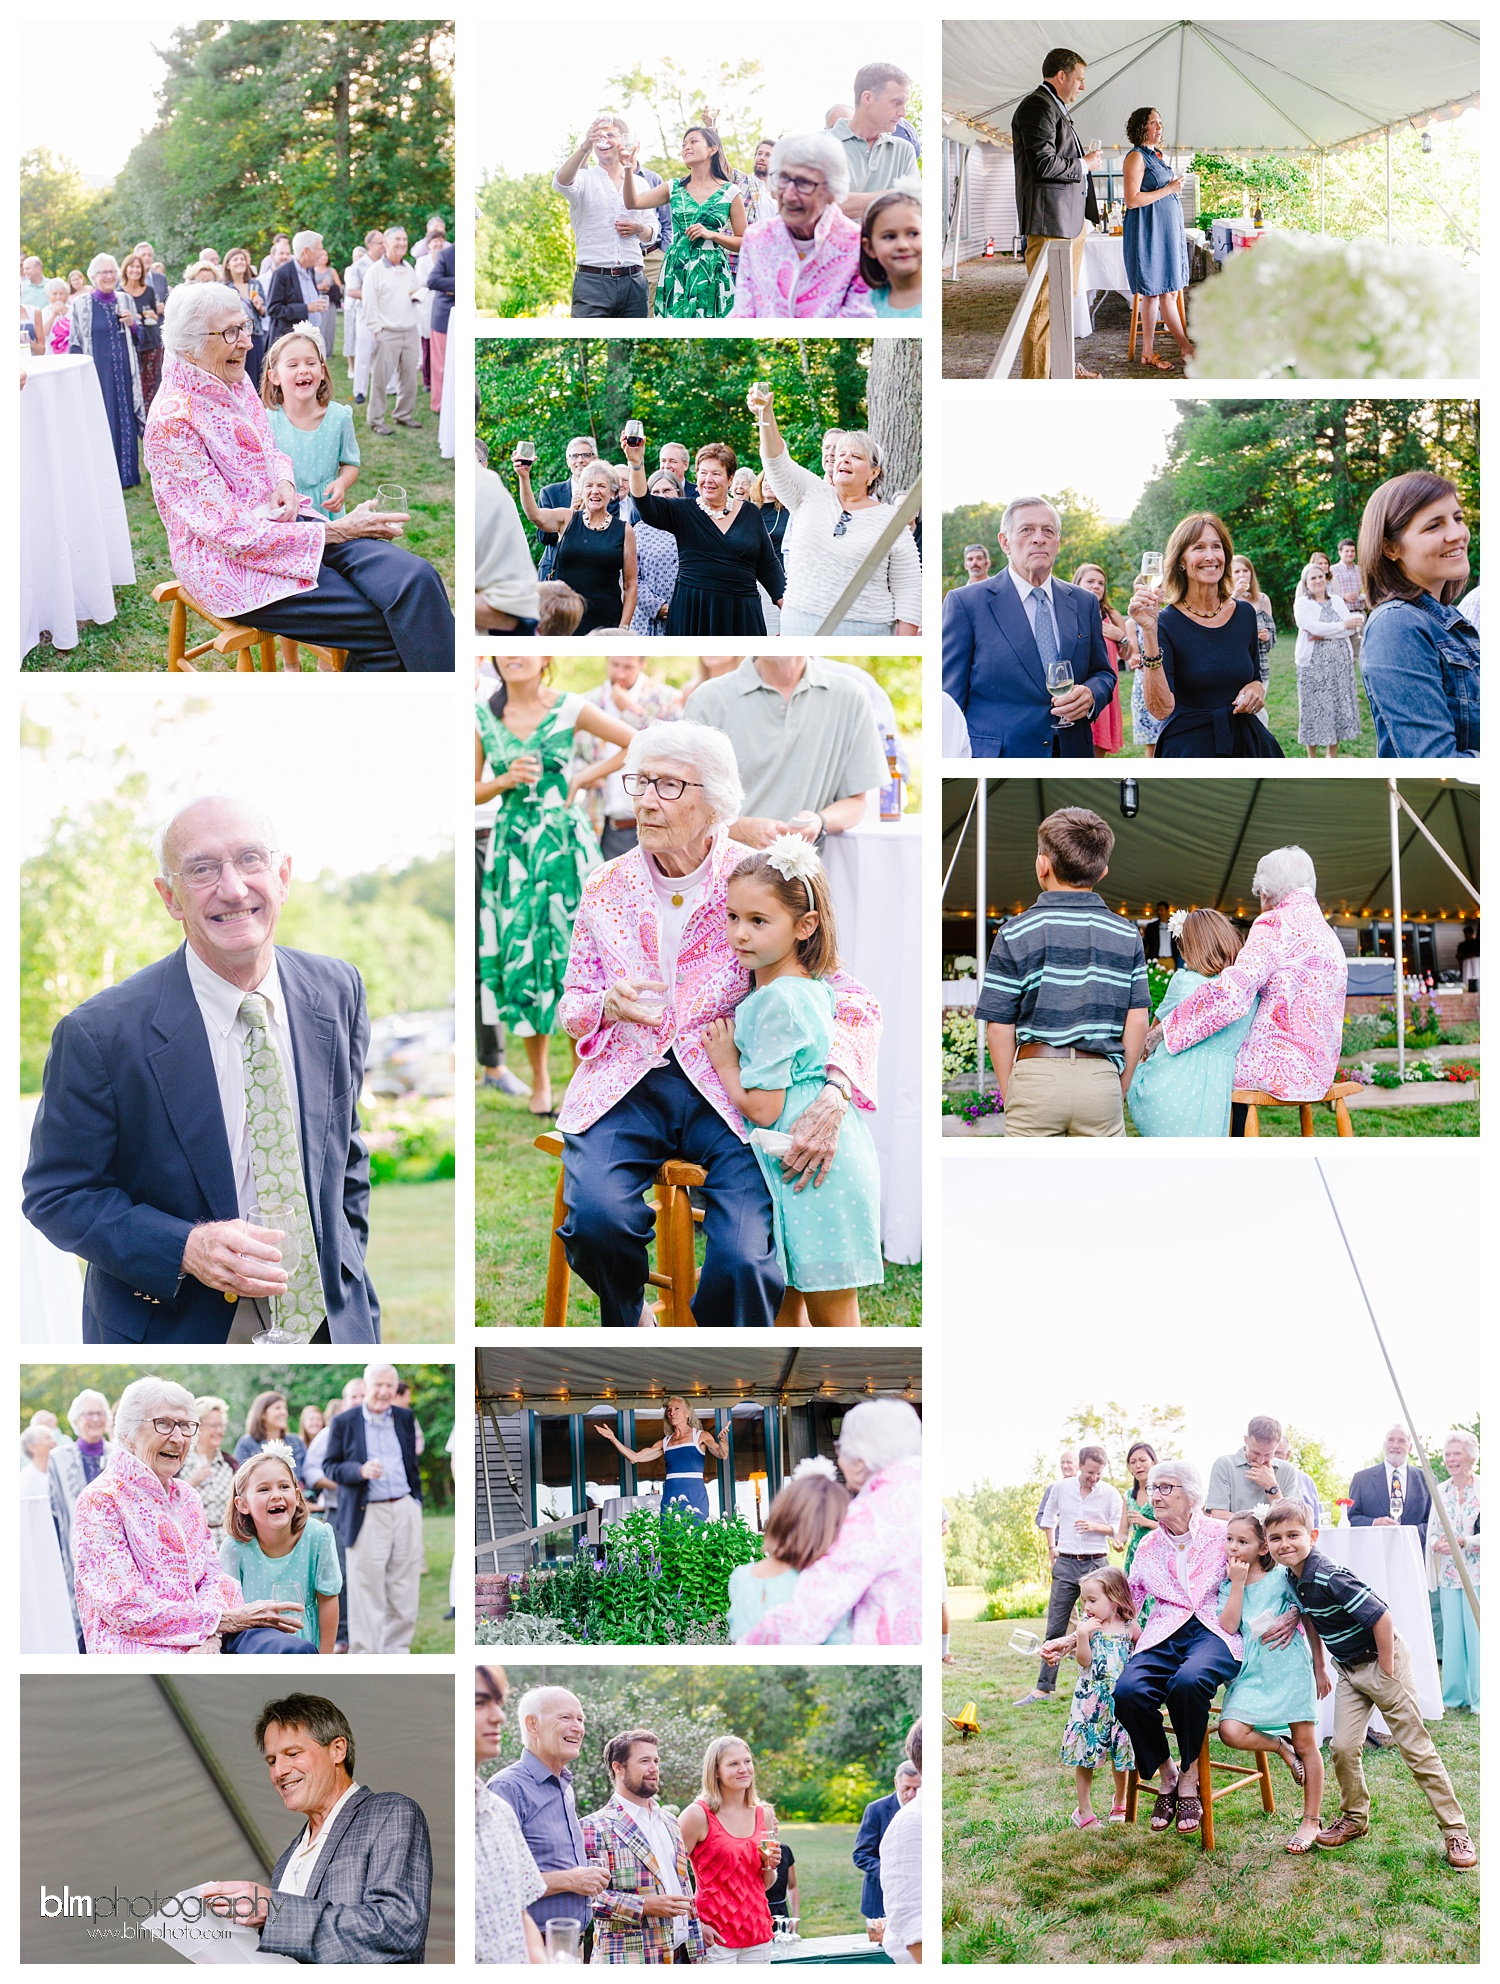 2017,20170729,444,91,Artistic,BLM,Candid,Creative,Dublin,Family Photography,Family party,Family photos,Home,Learned,Learned Rd,Learned Road,Martha Duffy,NH,NH Family Photographer,NH Wedding,Natural,Natural Light,Niles,Niles Family,Outdoor,Personal,Pet,Peterborough Wedding Photographer,Photo,Photographer,Photography,Photojournalistic,Portrait,Professional,Professional Wedding Photography,Rd,Road,USA,United States,Vivid,Wedding Photography,family reunion,www.blmphoto.com,©BLM Photography 2017,